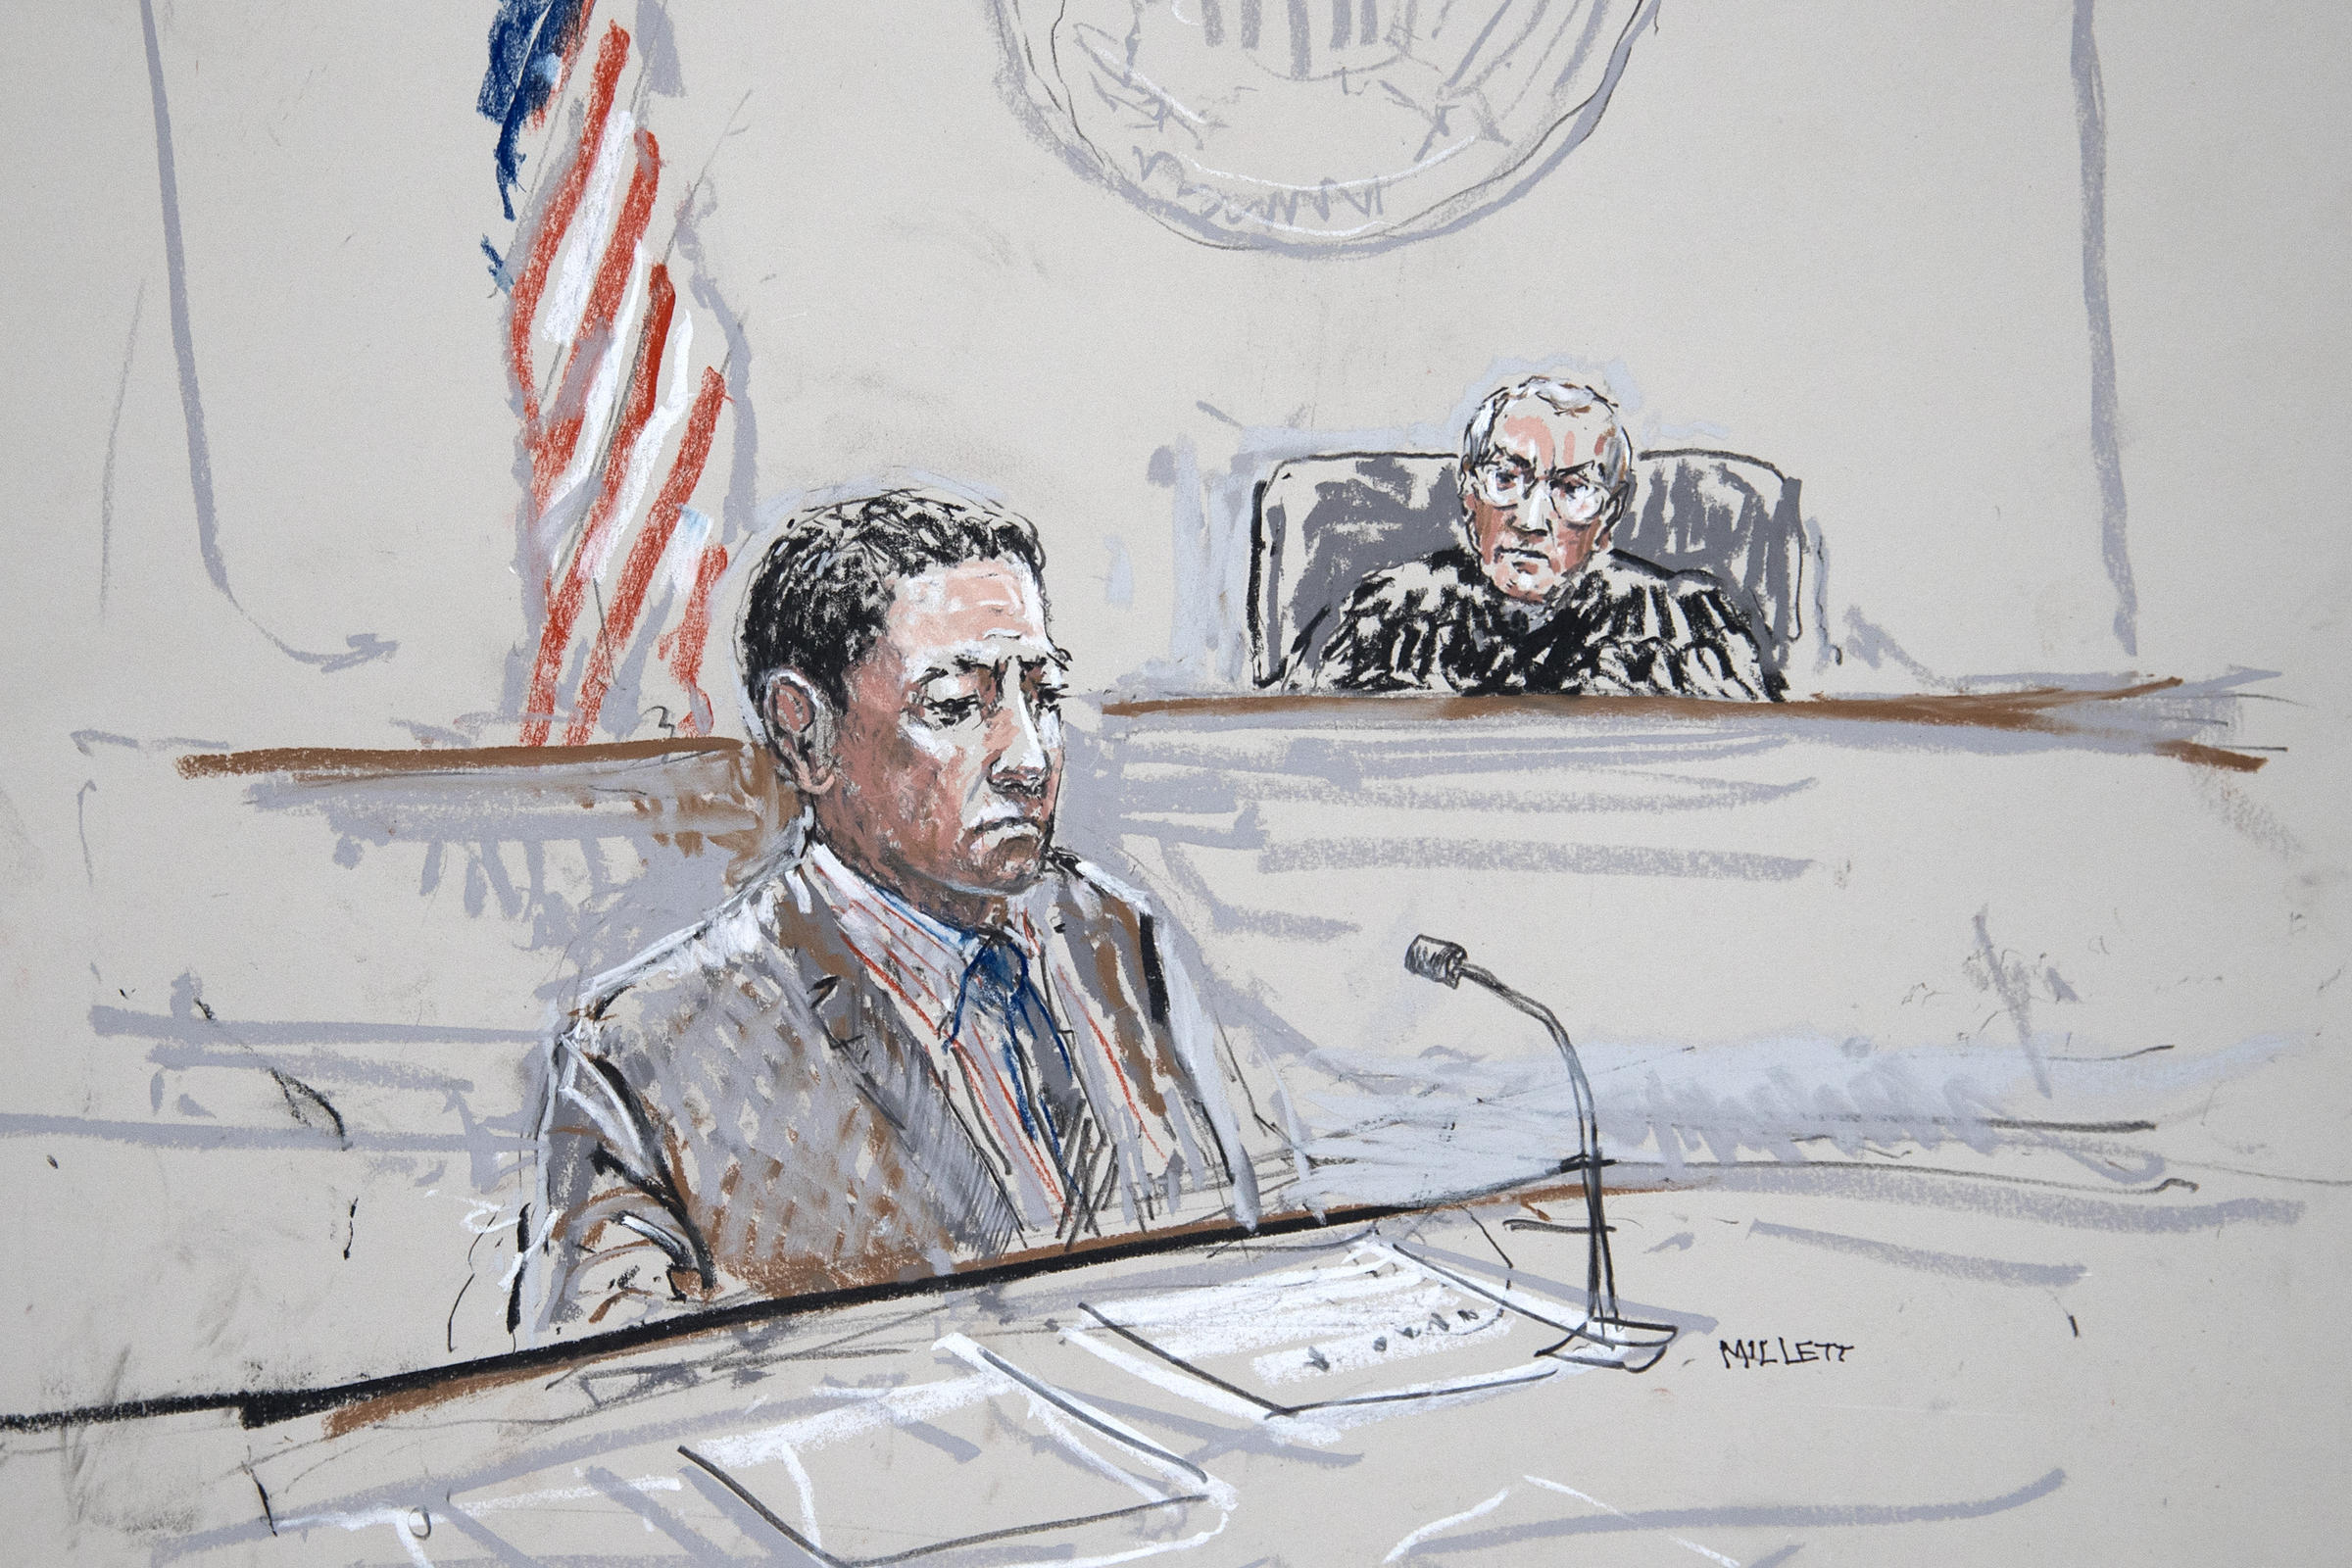 Raphael Sanchez is seen in U.S. District Court in Seattle in this artist's sketch